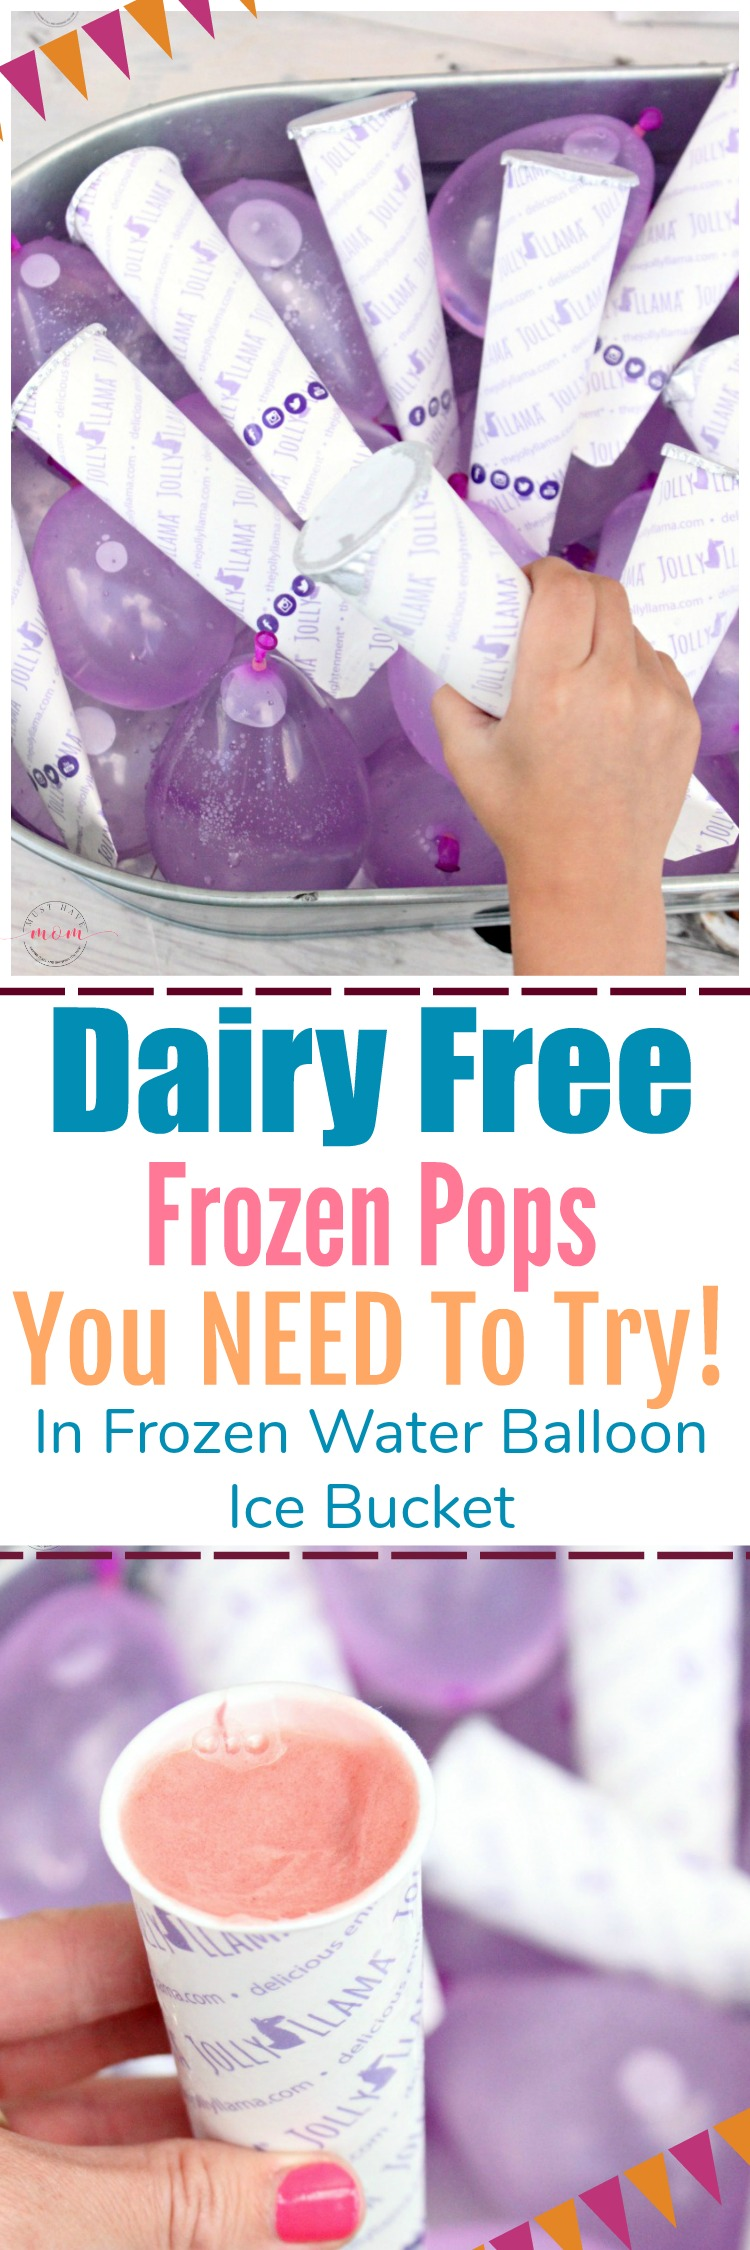 Do THIS genius ice bucket party hack at your next party! Use frozen water balloons to keep sorbet pops frozen and then have a water balloon fight afterwards!